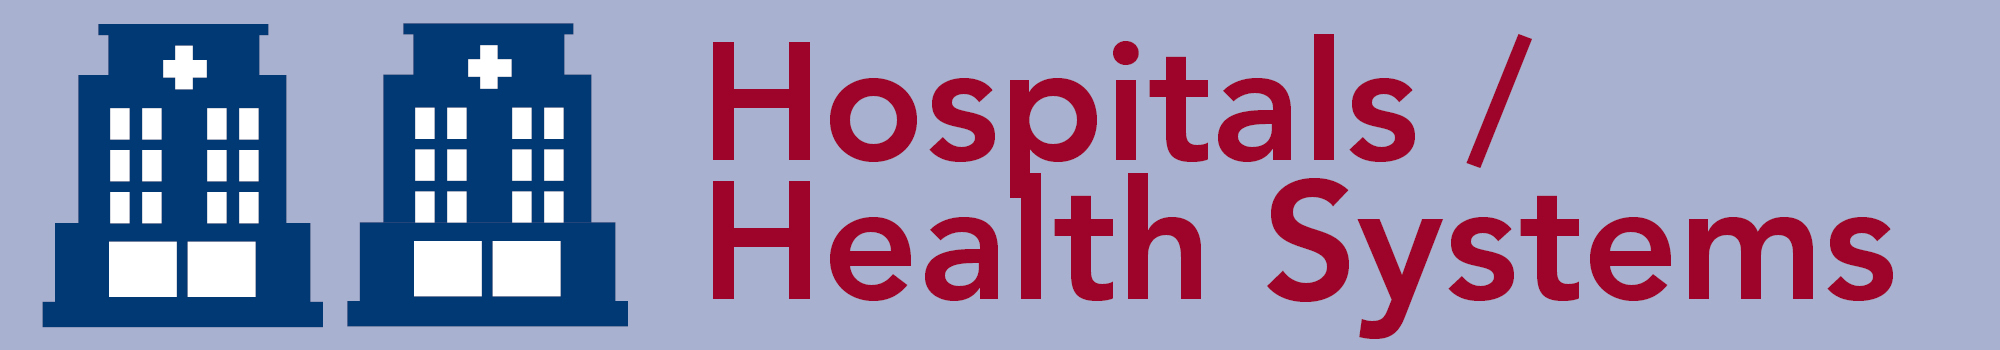 hospital healthsystems REAL